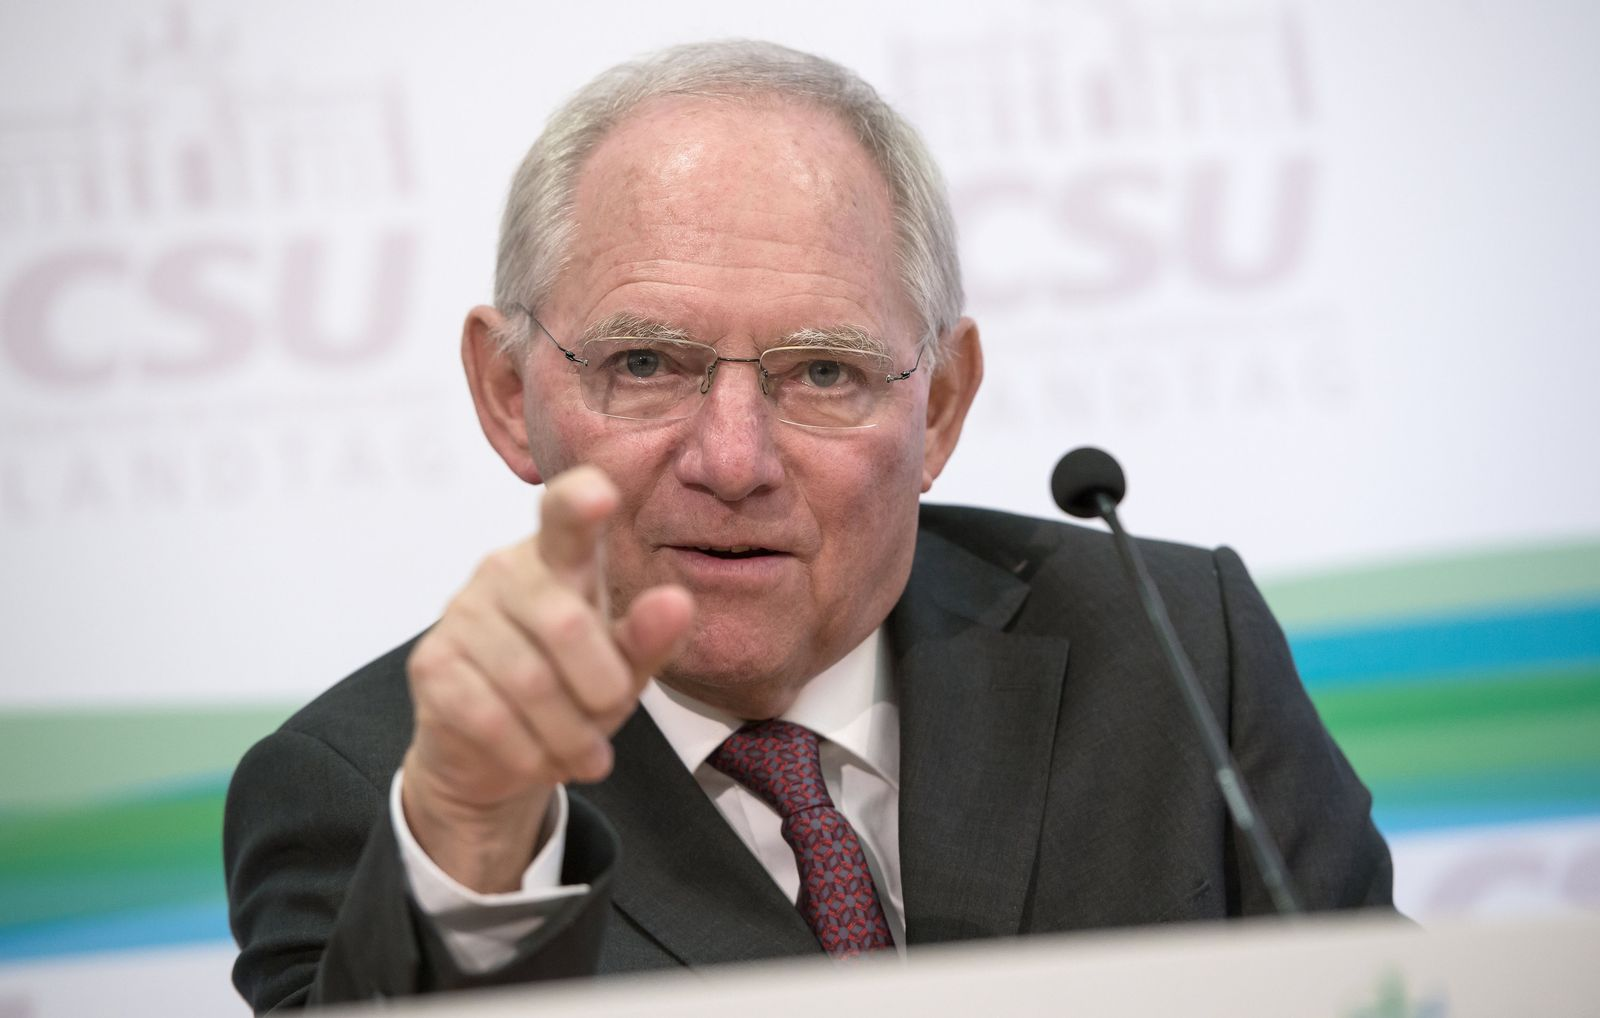 Schäuble/ Winterklausur